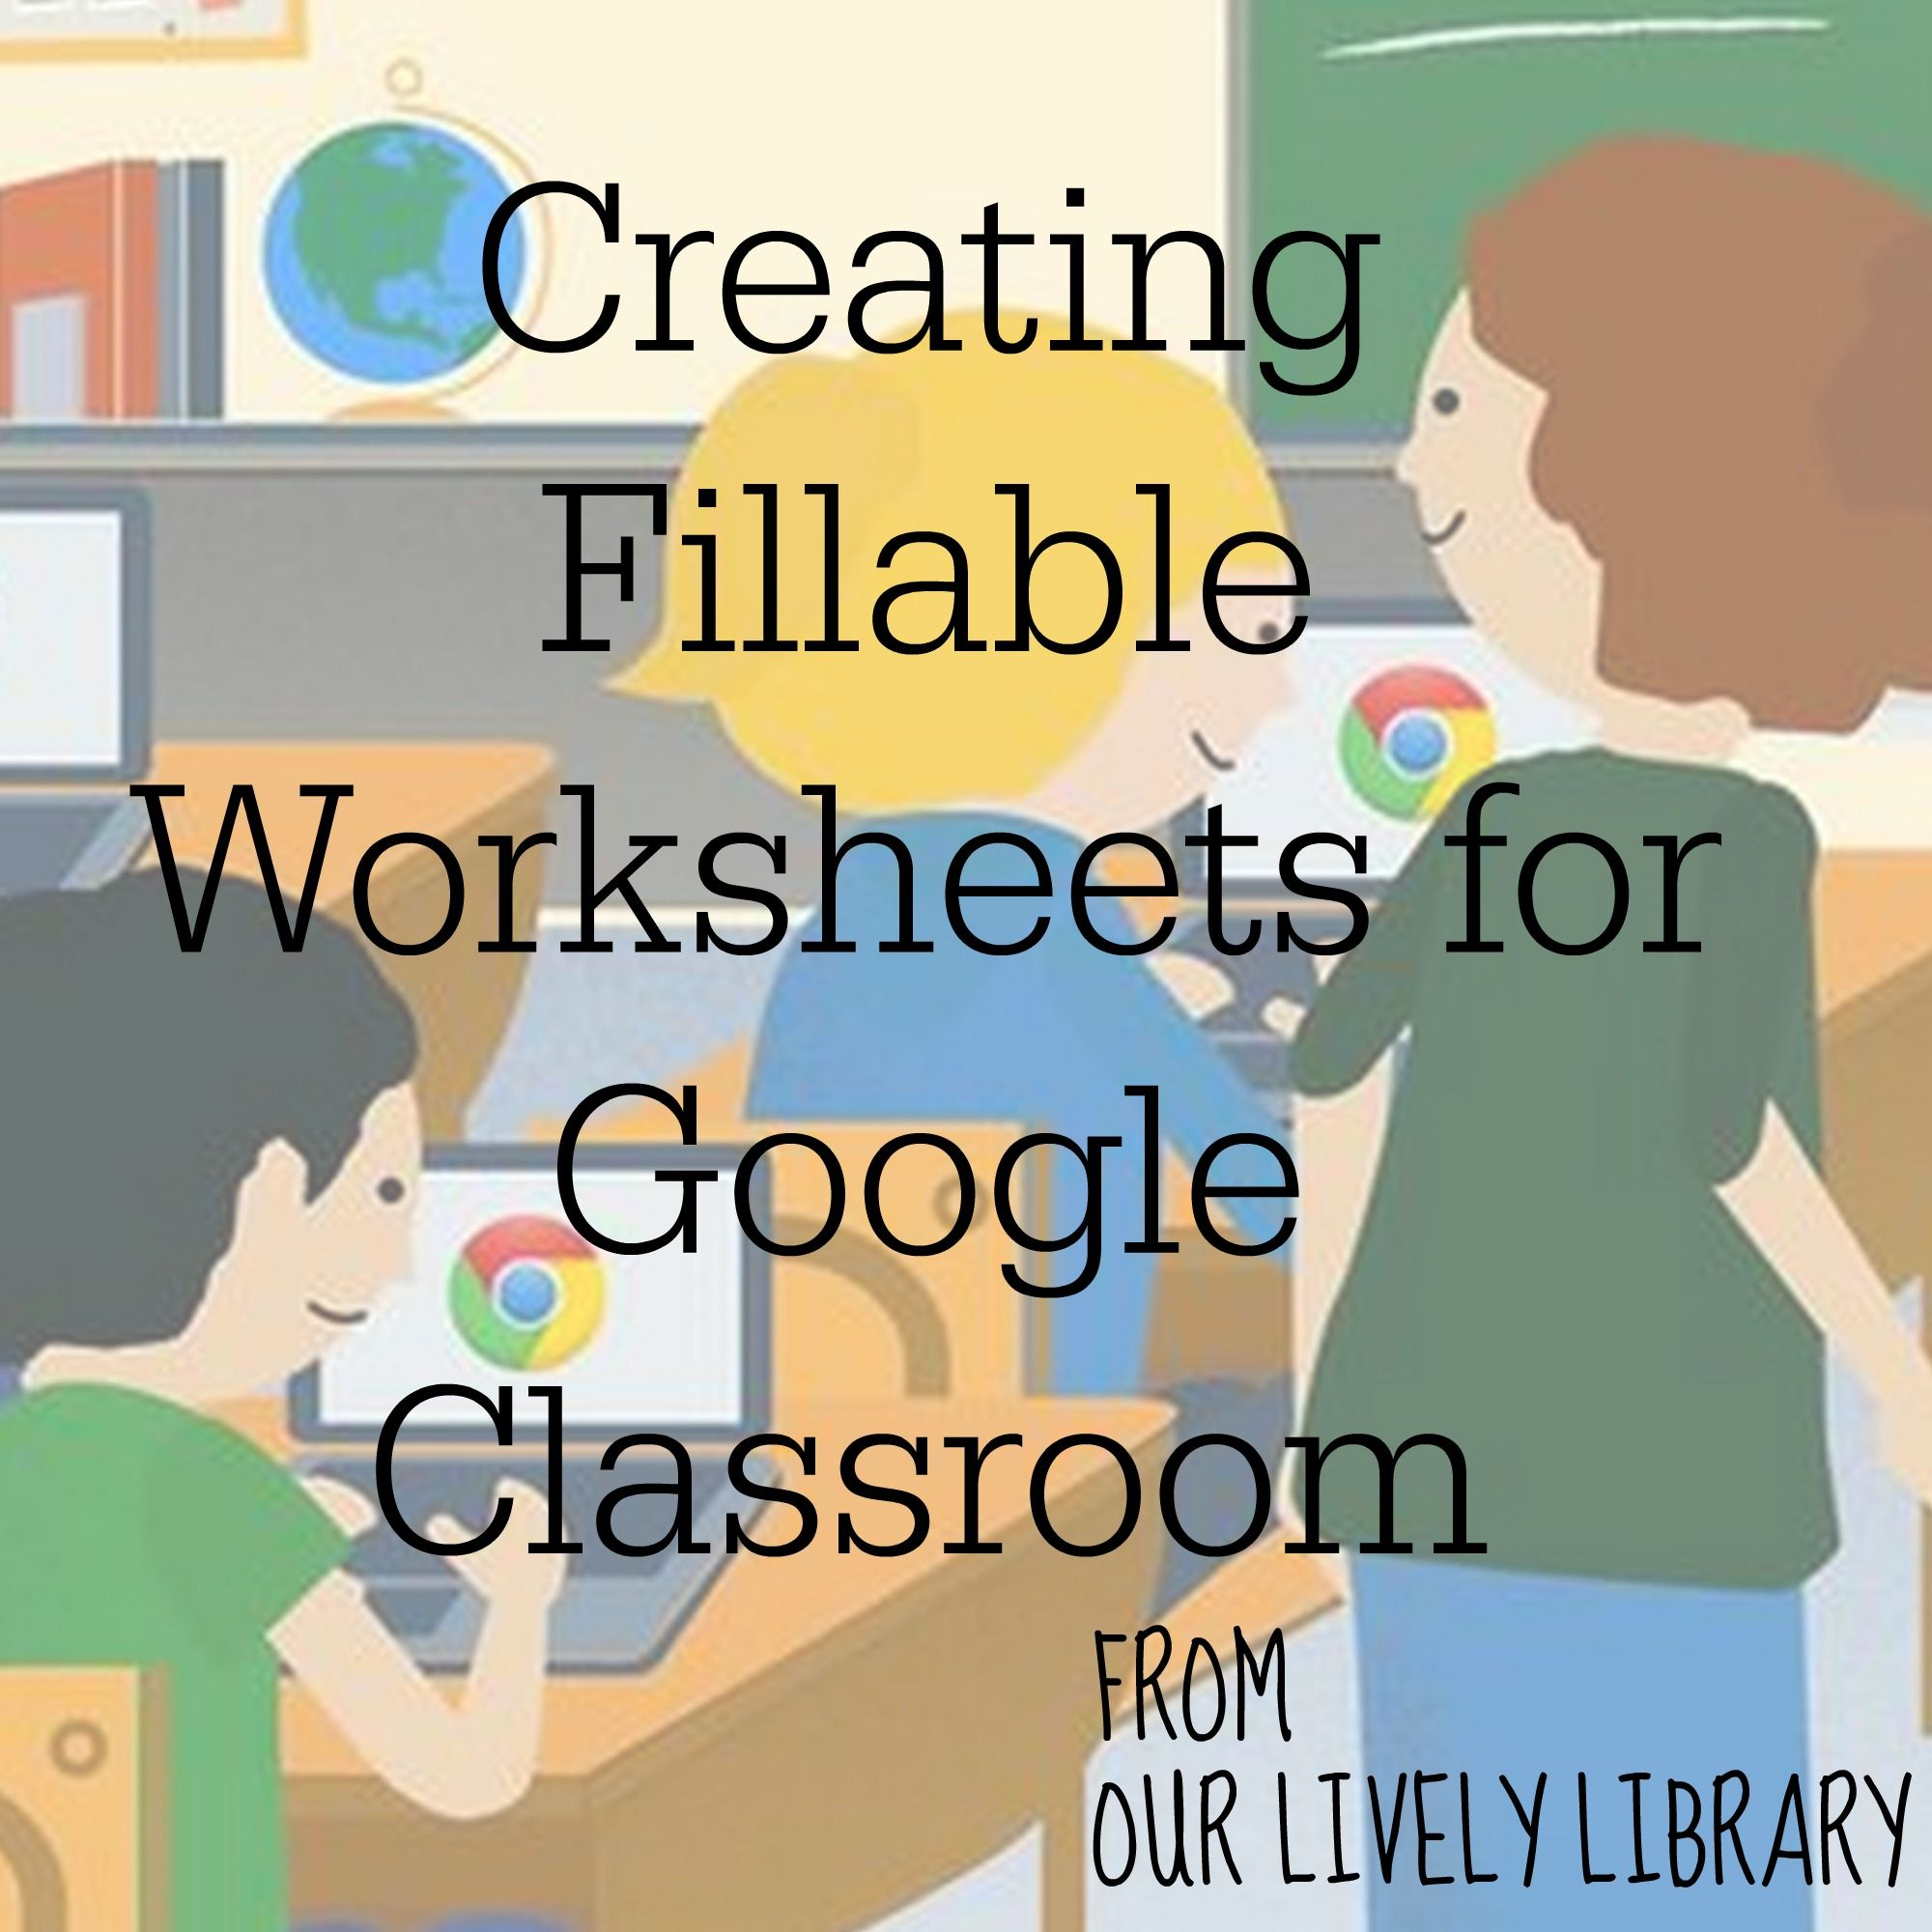 Creating fillable worksheets in Google Classroom the smart